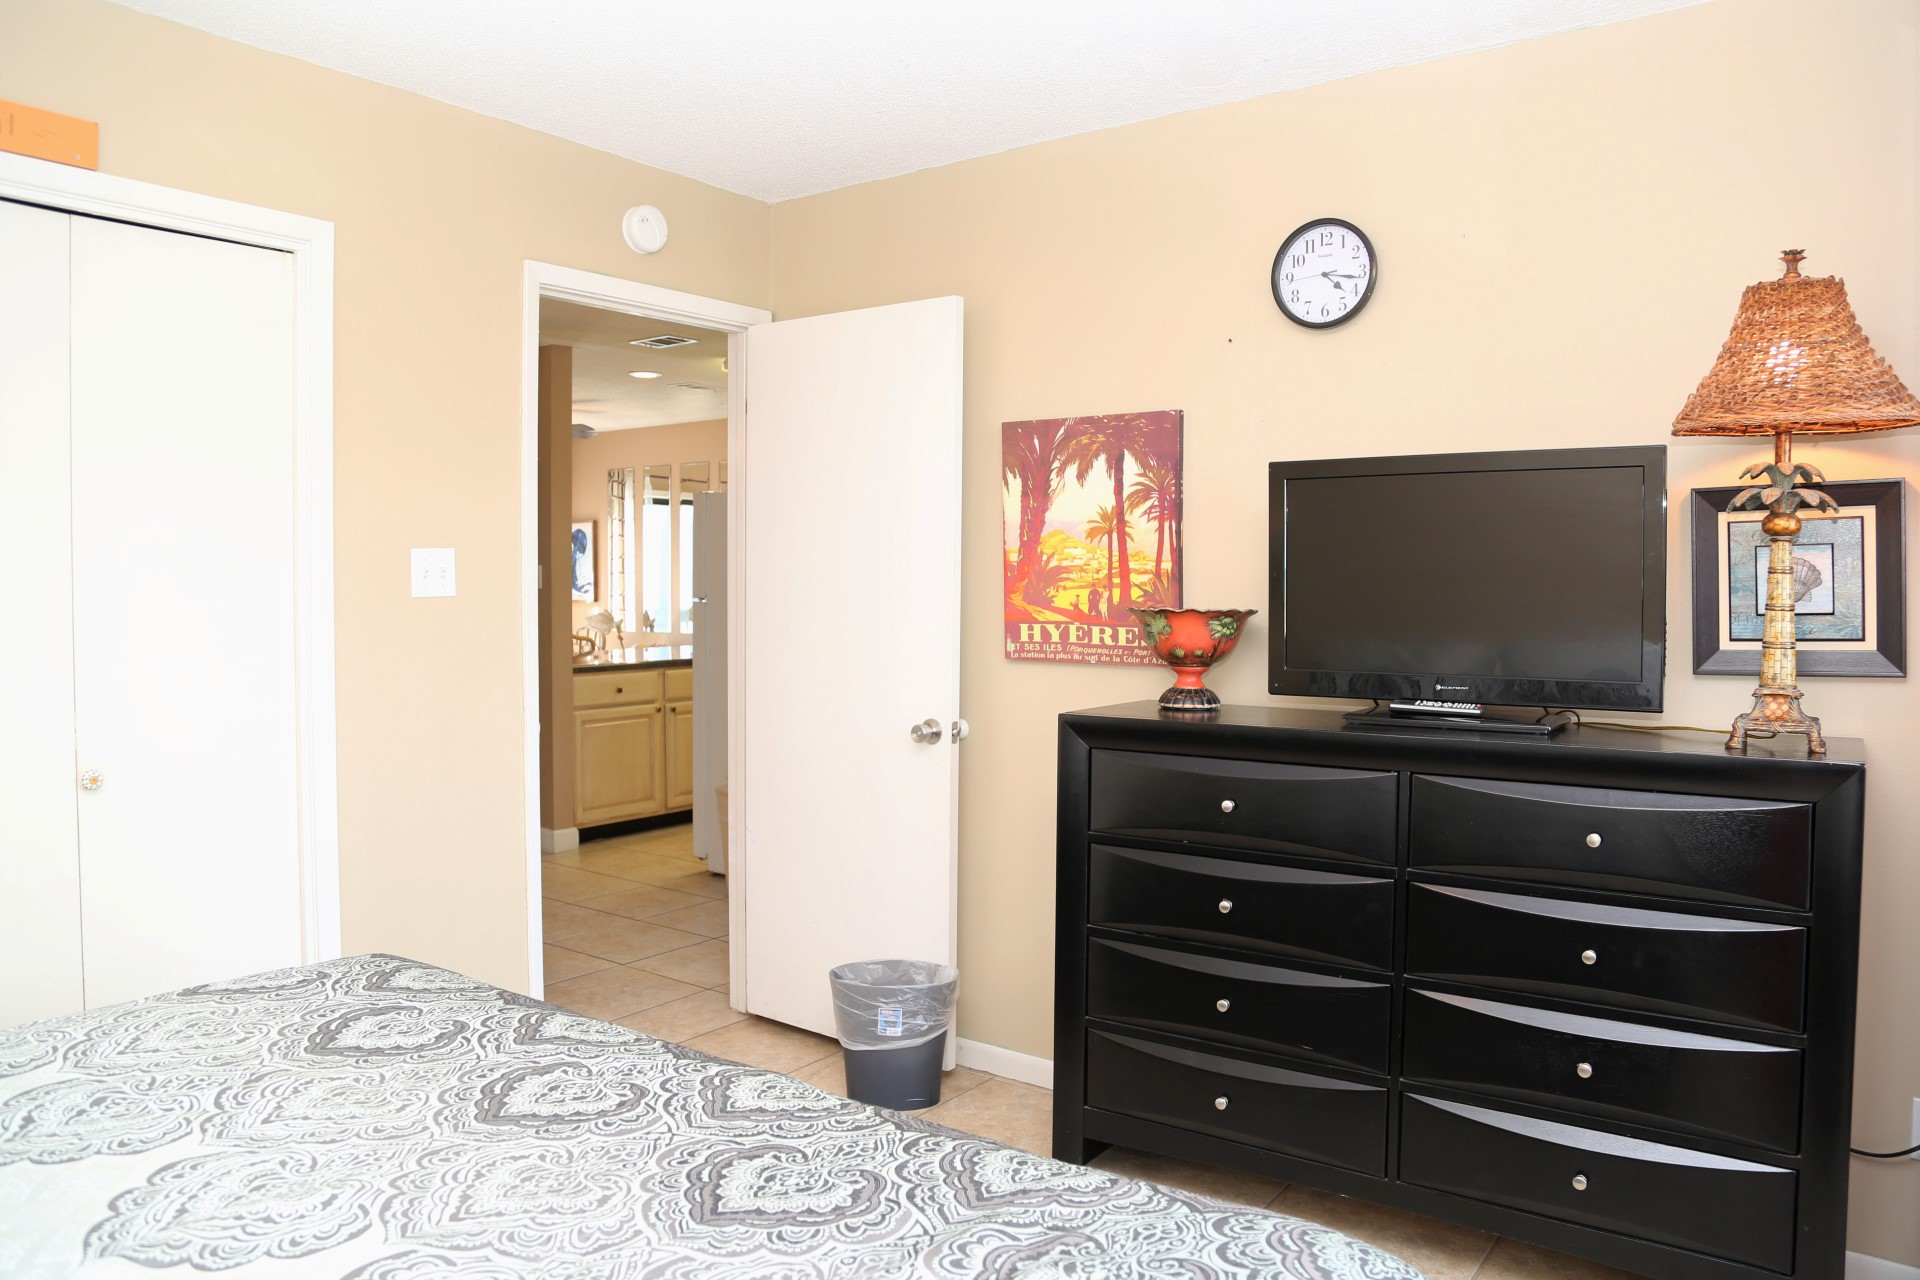 The master bedroom is outfitted with a king-size bed, 32